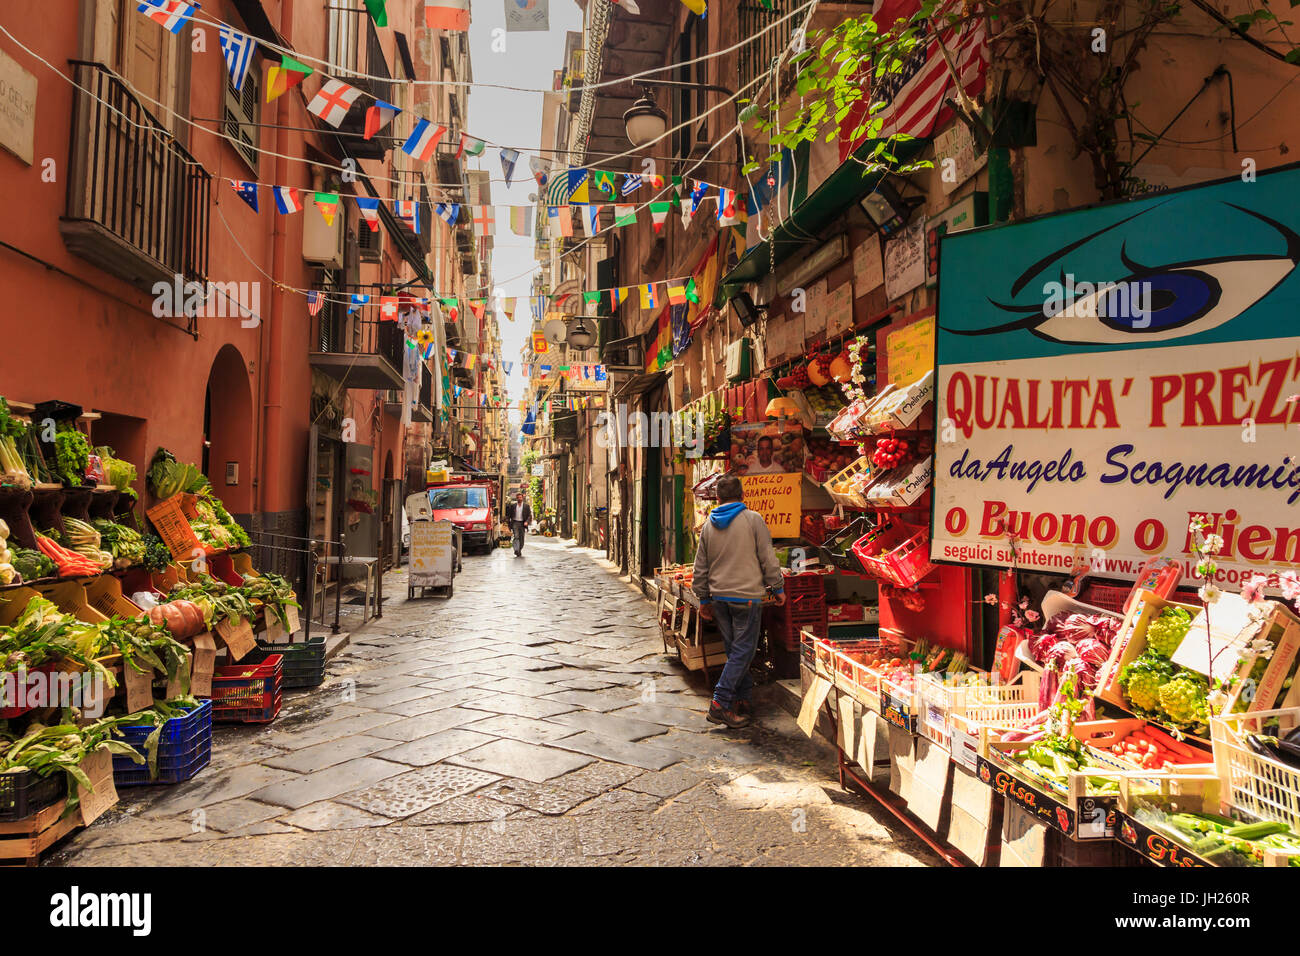 Alley in the densely populated Spanish Quarter (Quartieri Spagnoli), City of Naples, Campania, Italy, Europe - Stock Image